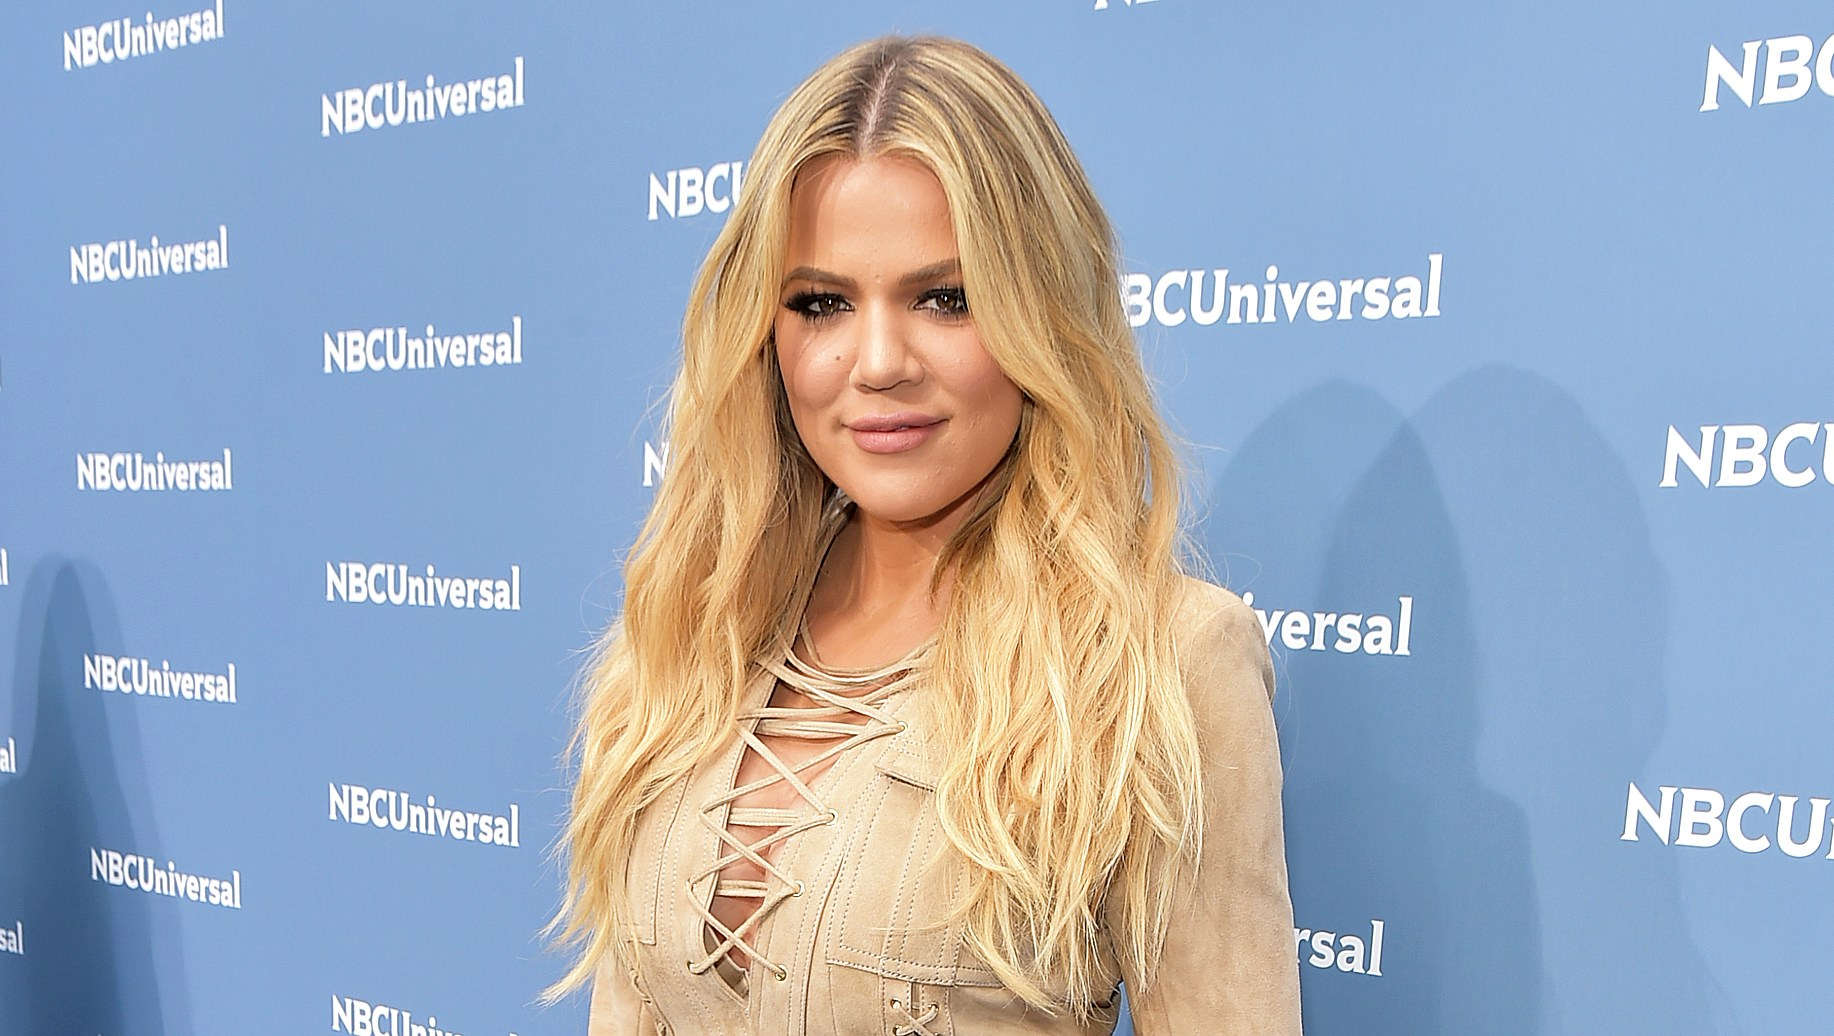 Khloe Kardashian Trying Not to Let Humiliation Overshadow Birth of Daughter